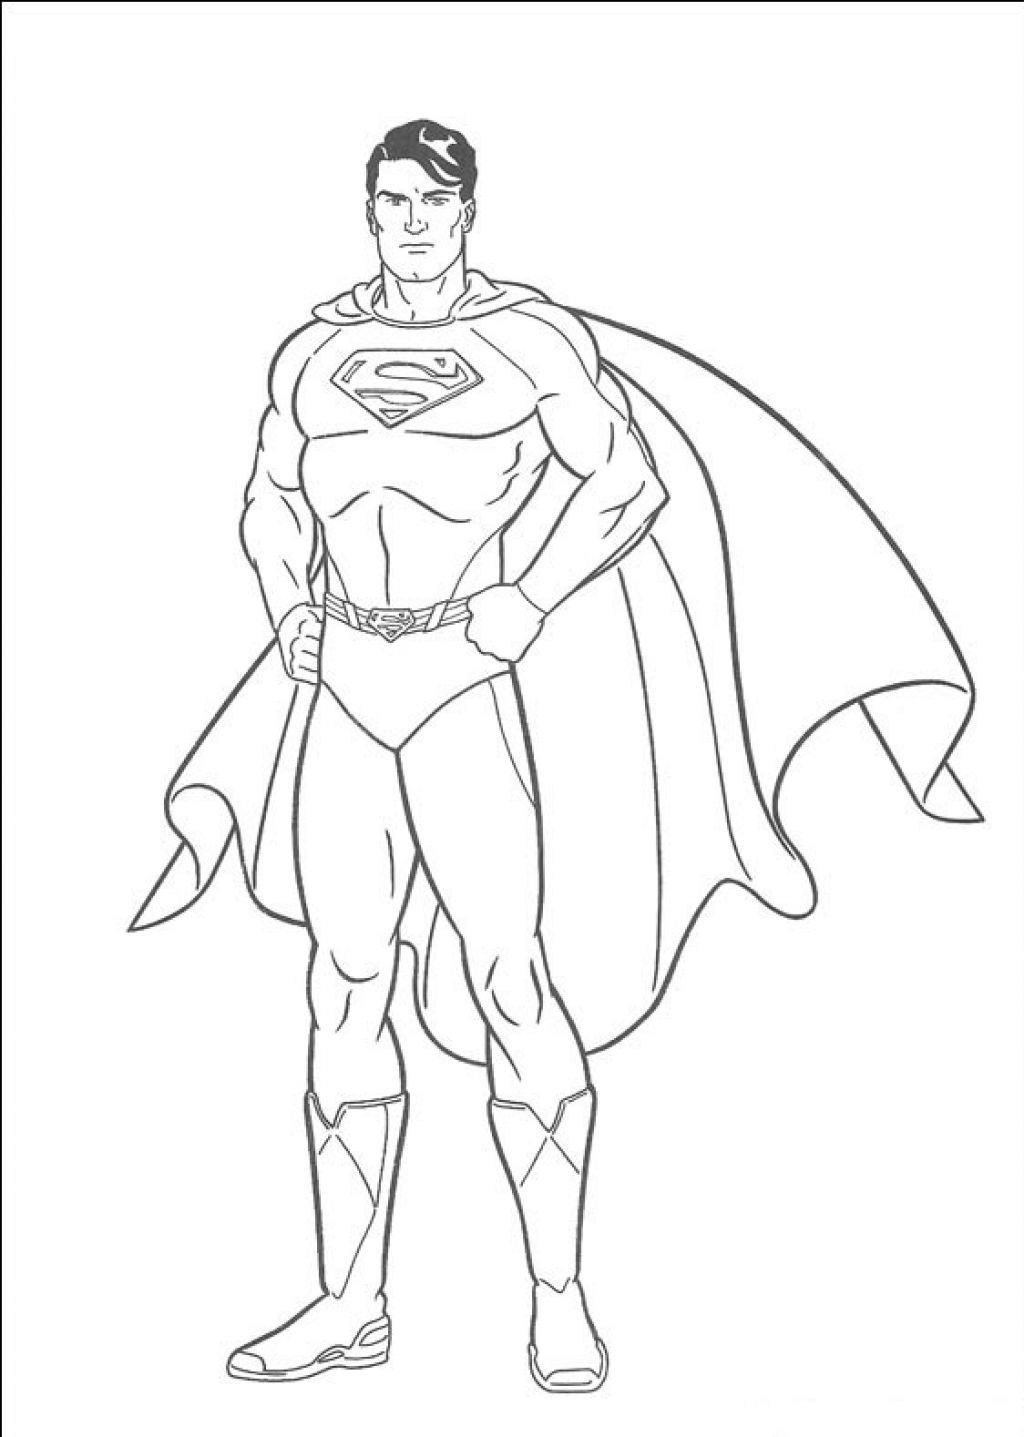 Superman Coloring Page Superman Coloring Pages 30140 New 15 Cool Coloring Pages For